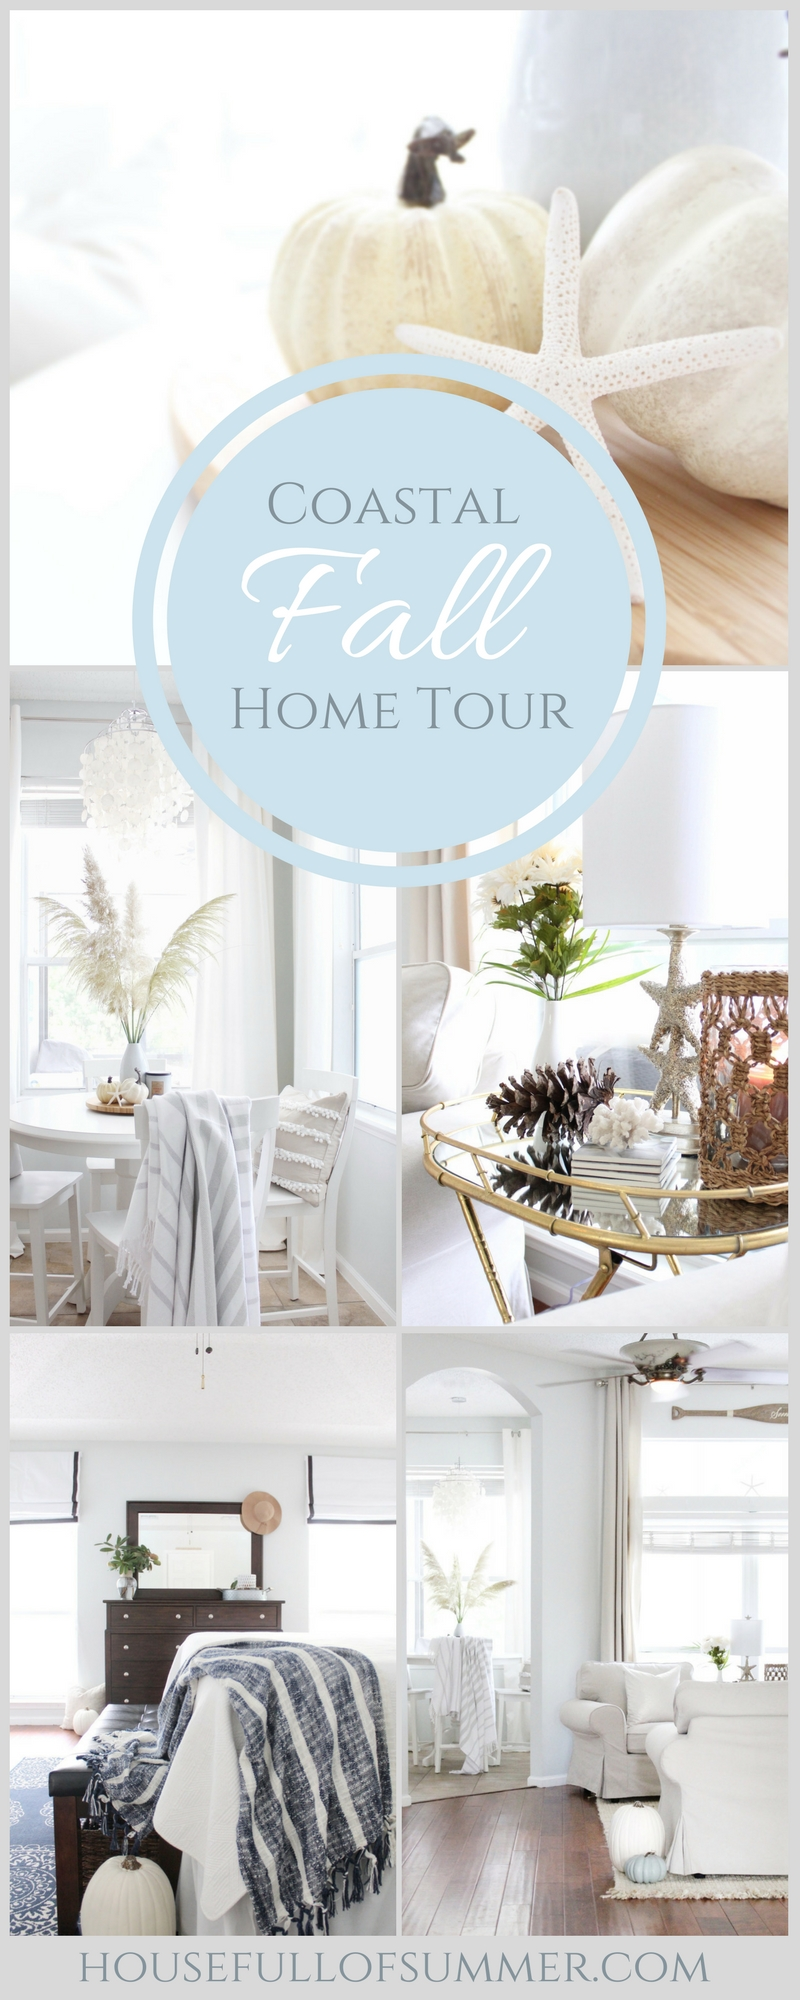 Fall Home Tour Blog Hop - House Full of Summer - cozy, coastal, chic, neutral fall decor, entryway, foyer, living room, bedroom, breakfast nook, dining room ideas